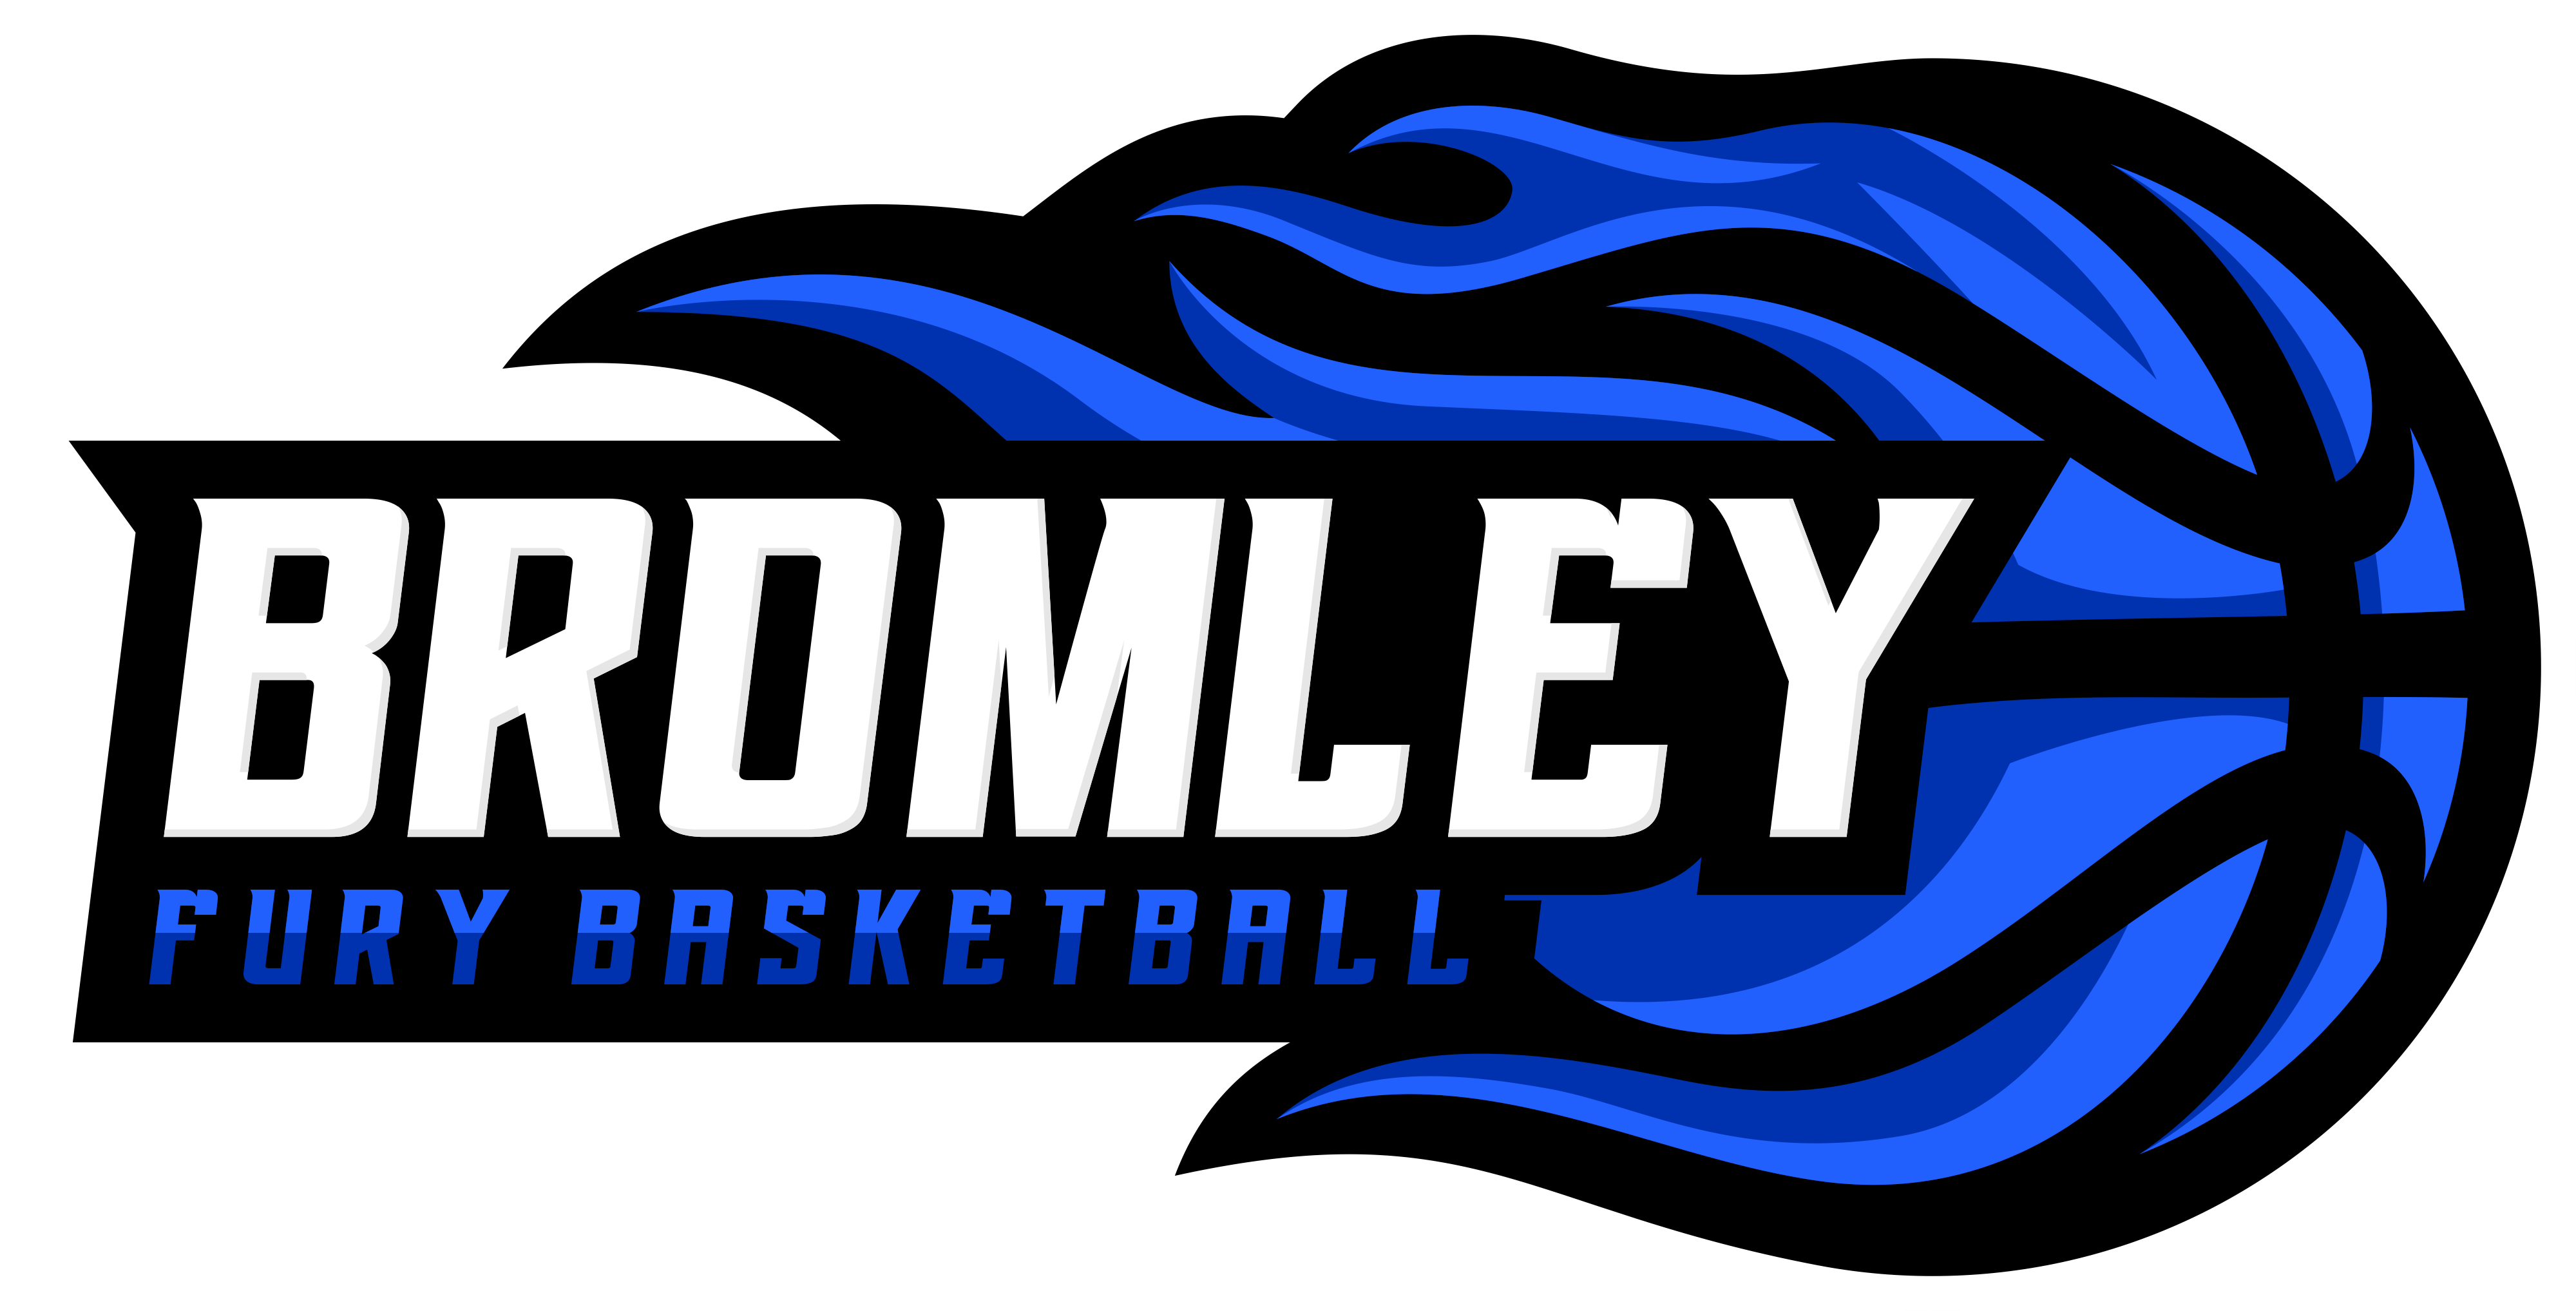 Bromley Basketball Club